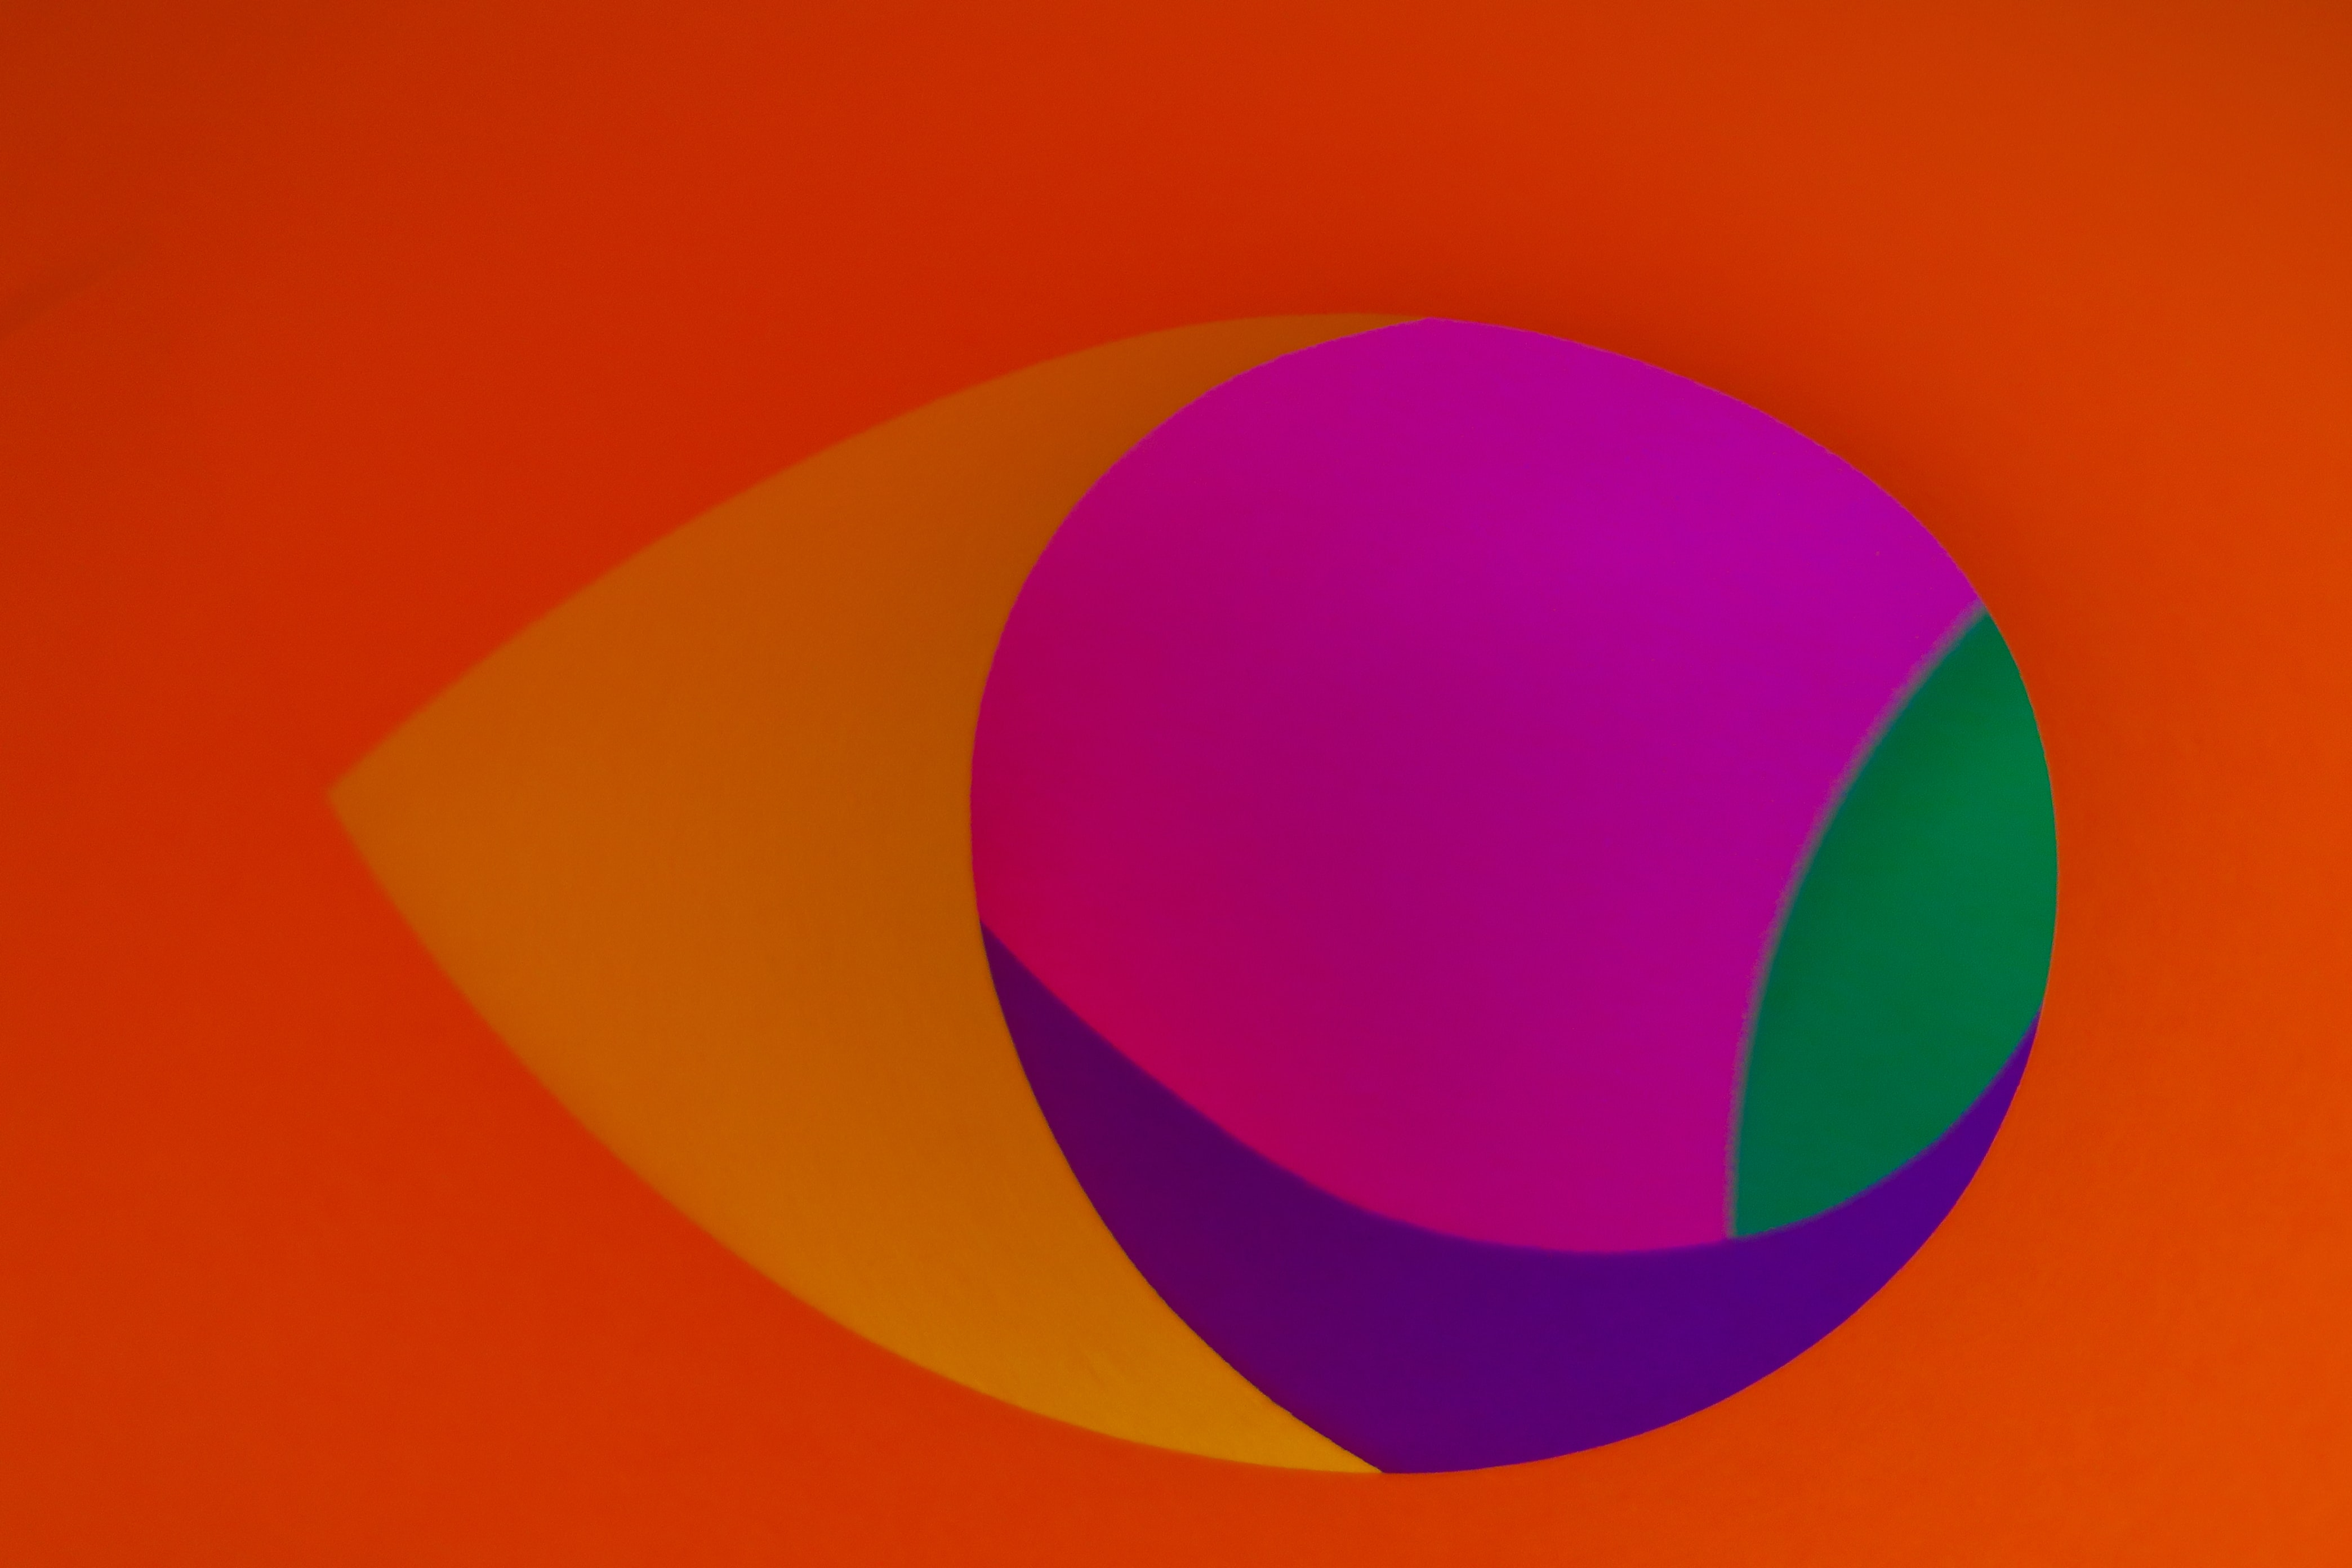 pink, orange, and purple abstract art